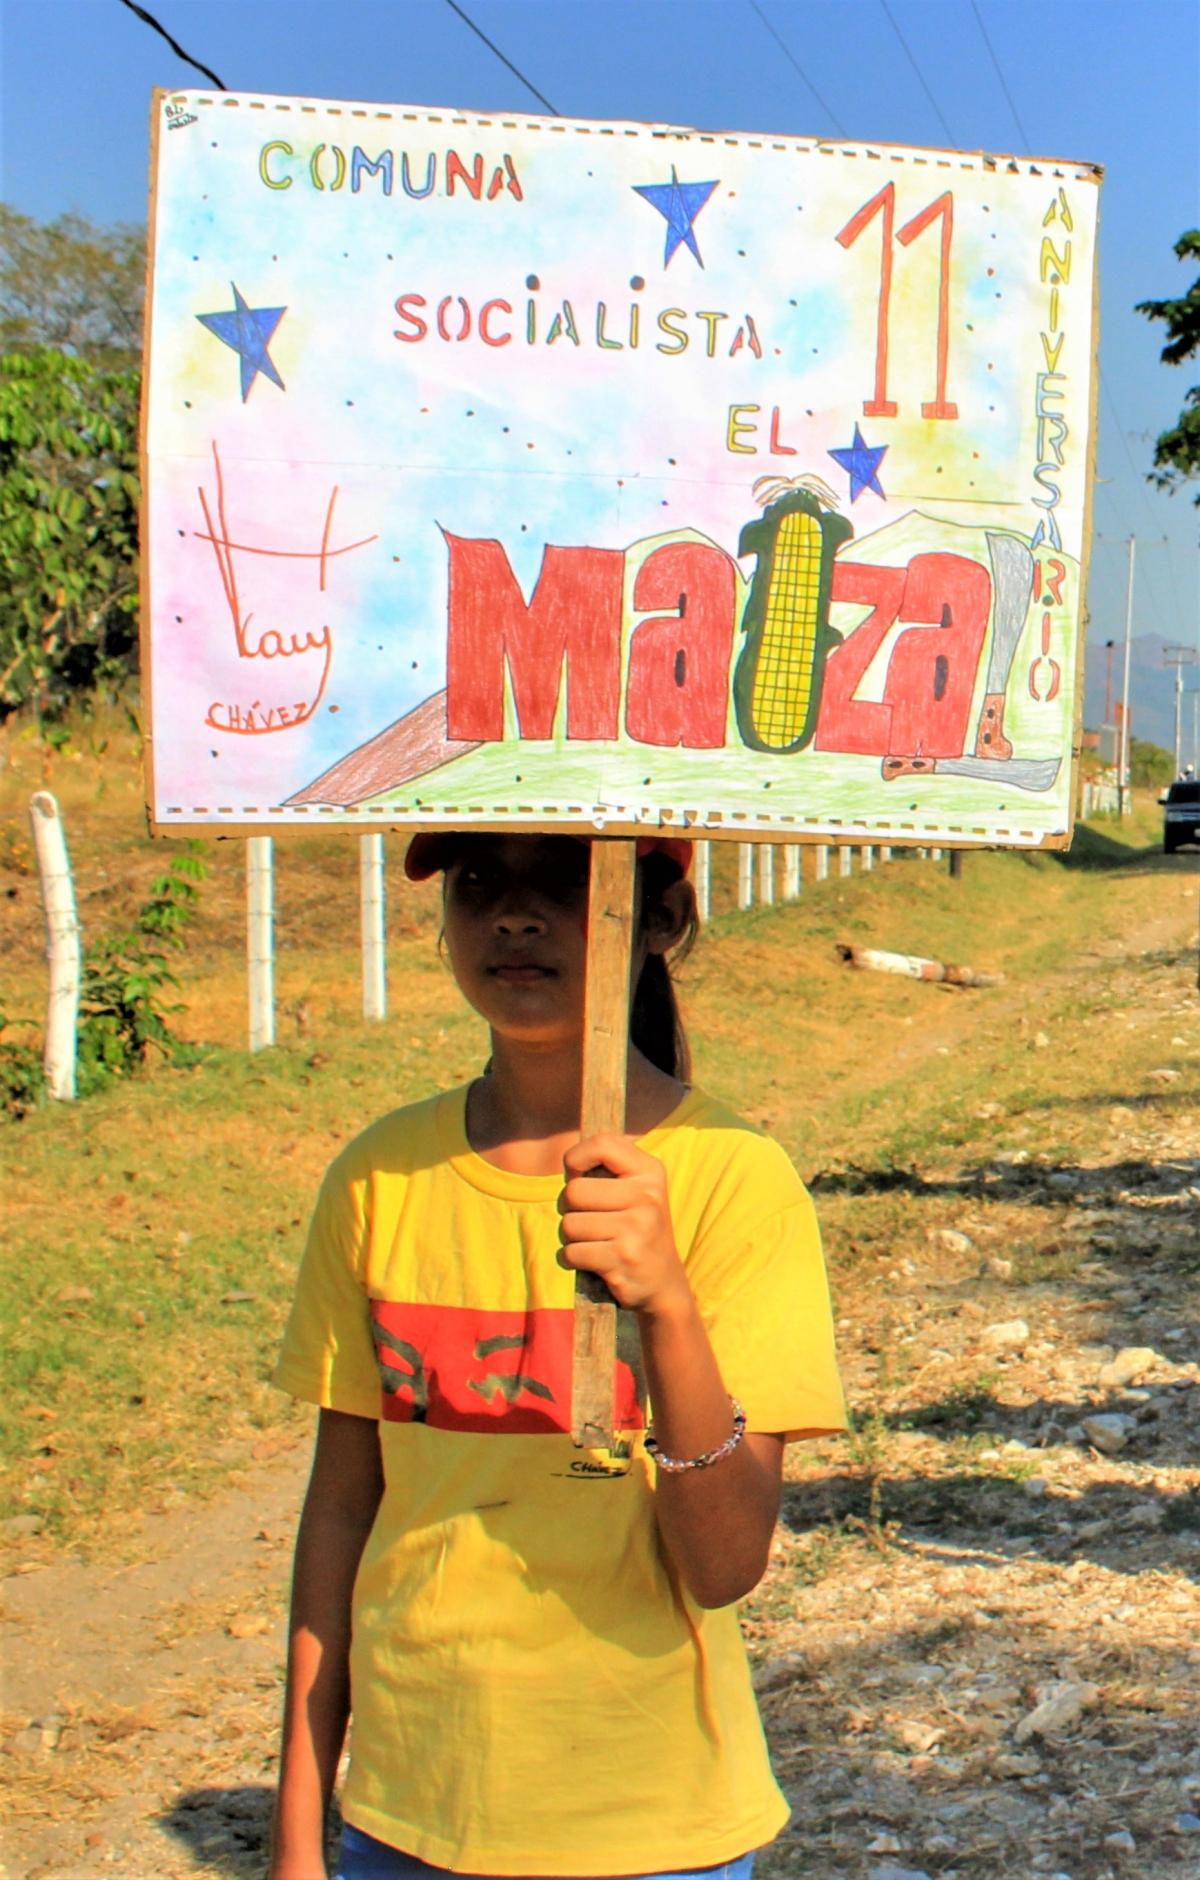 Anniversary of El Maizal Commune: Young communard